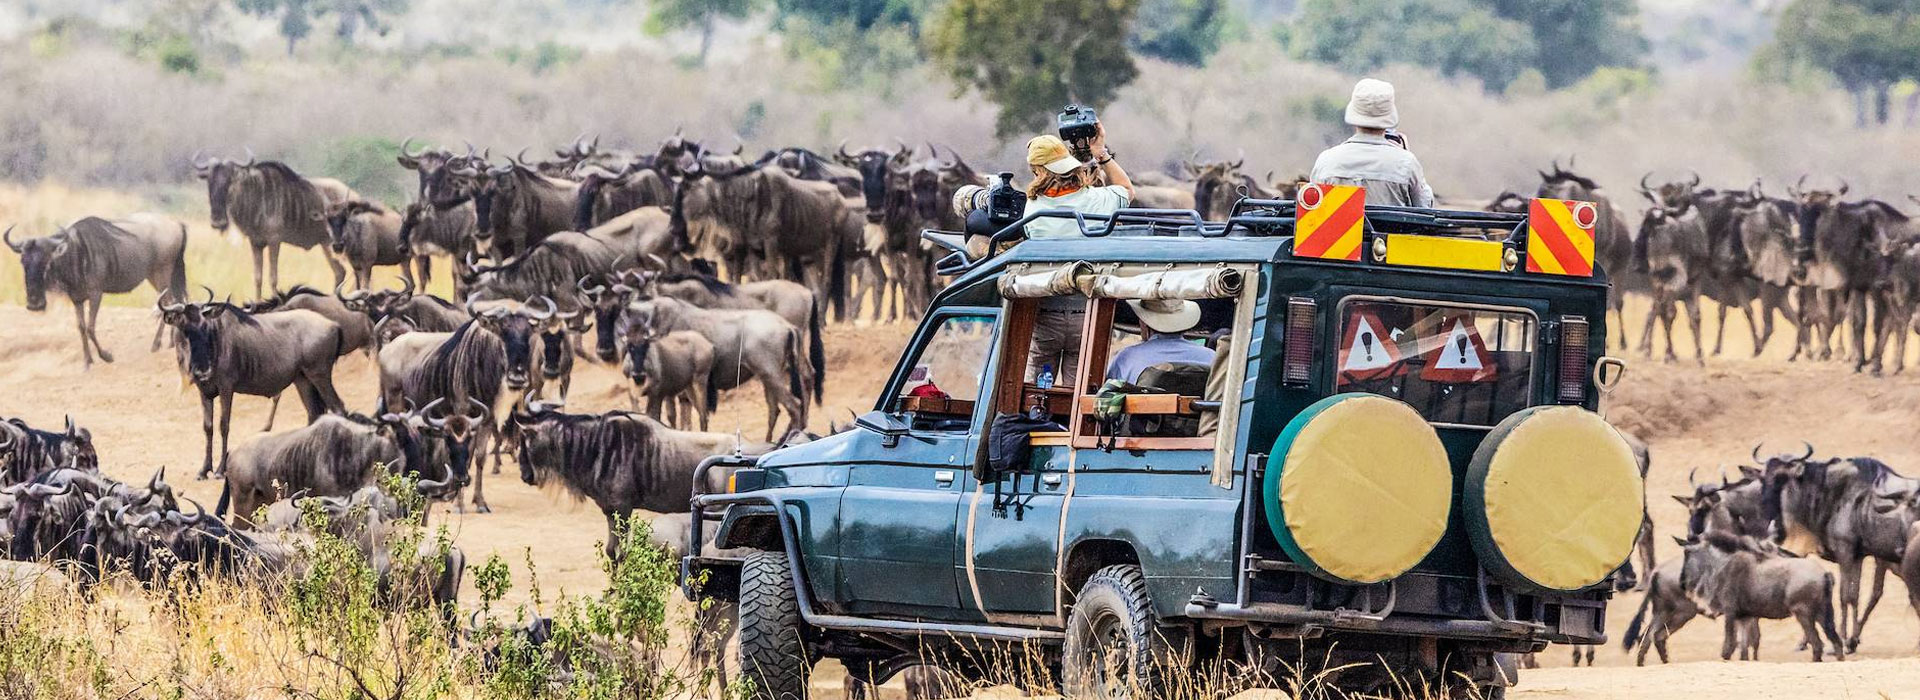 4 Days Tsavo East, Tsavo West and Amboseli Safari from Nairobi